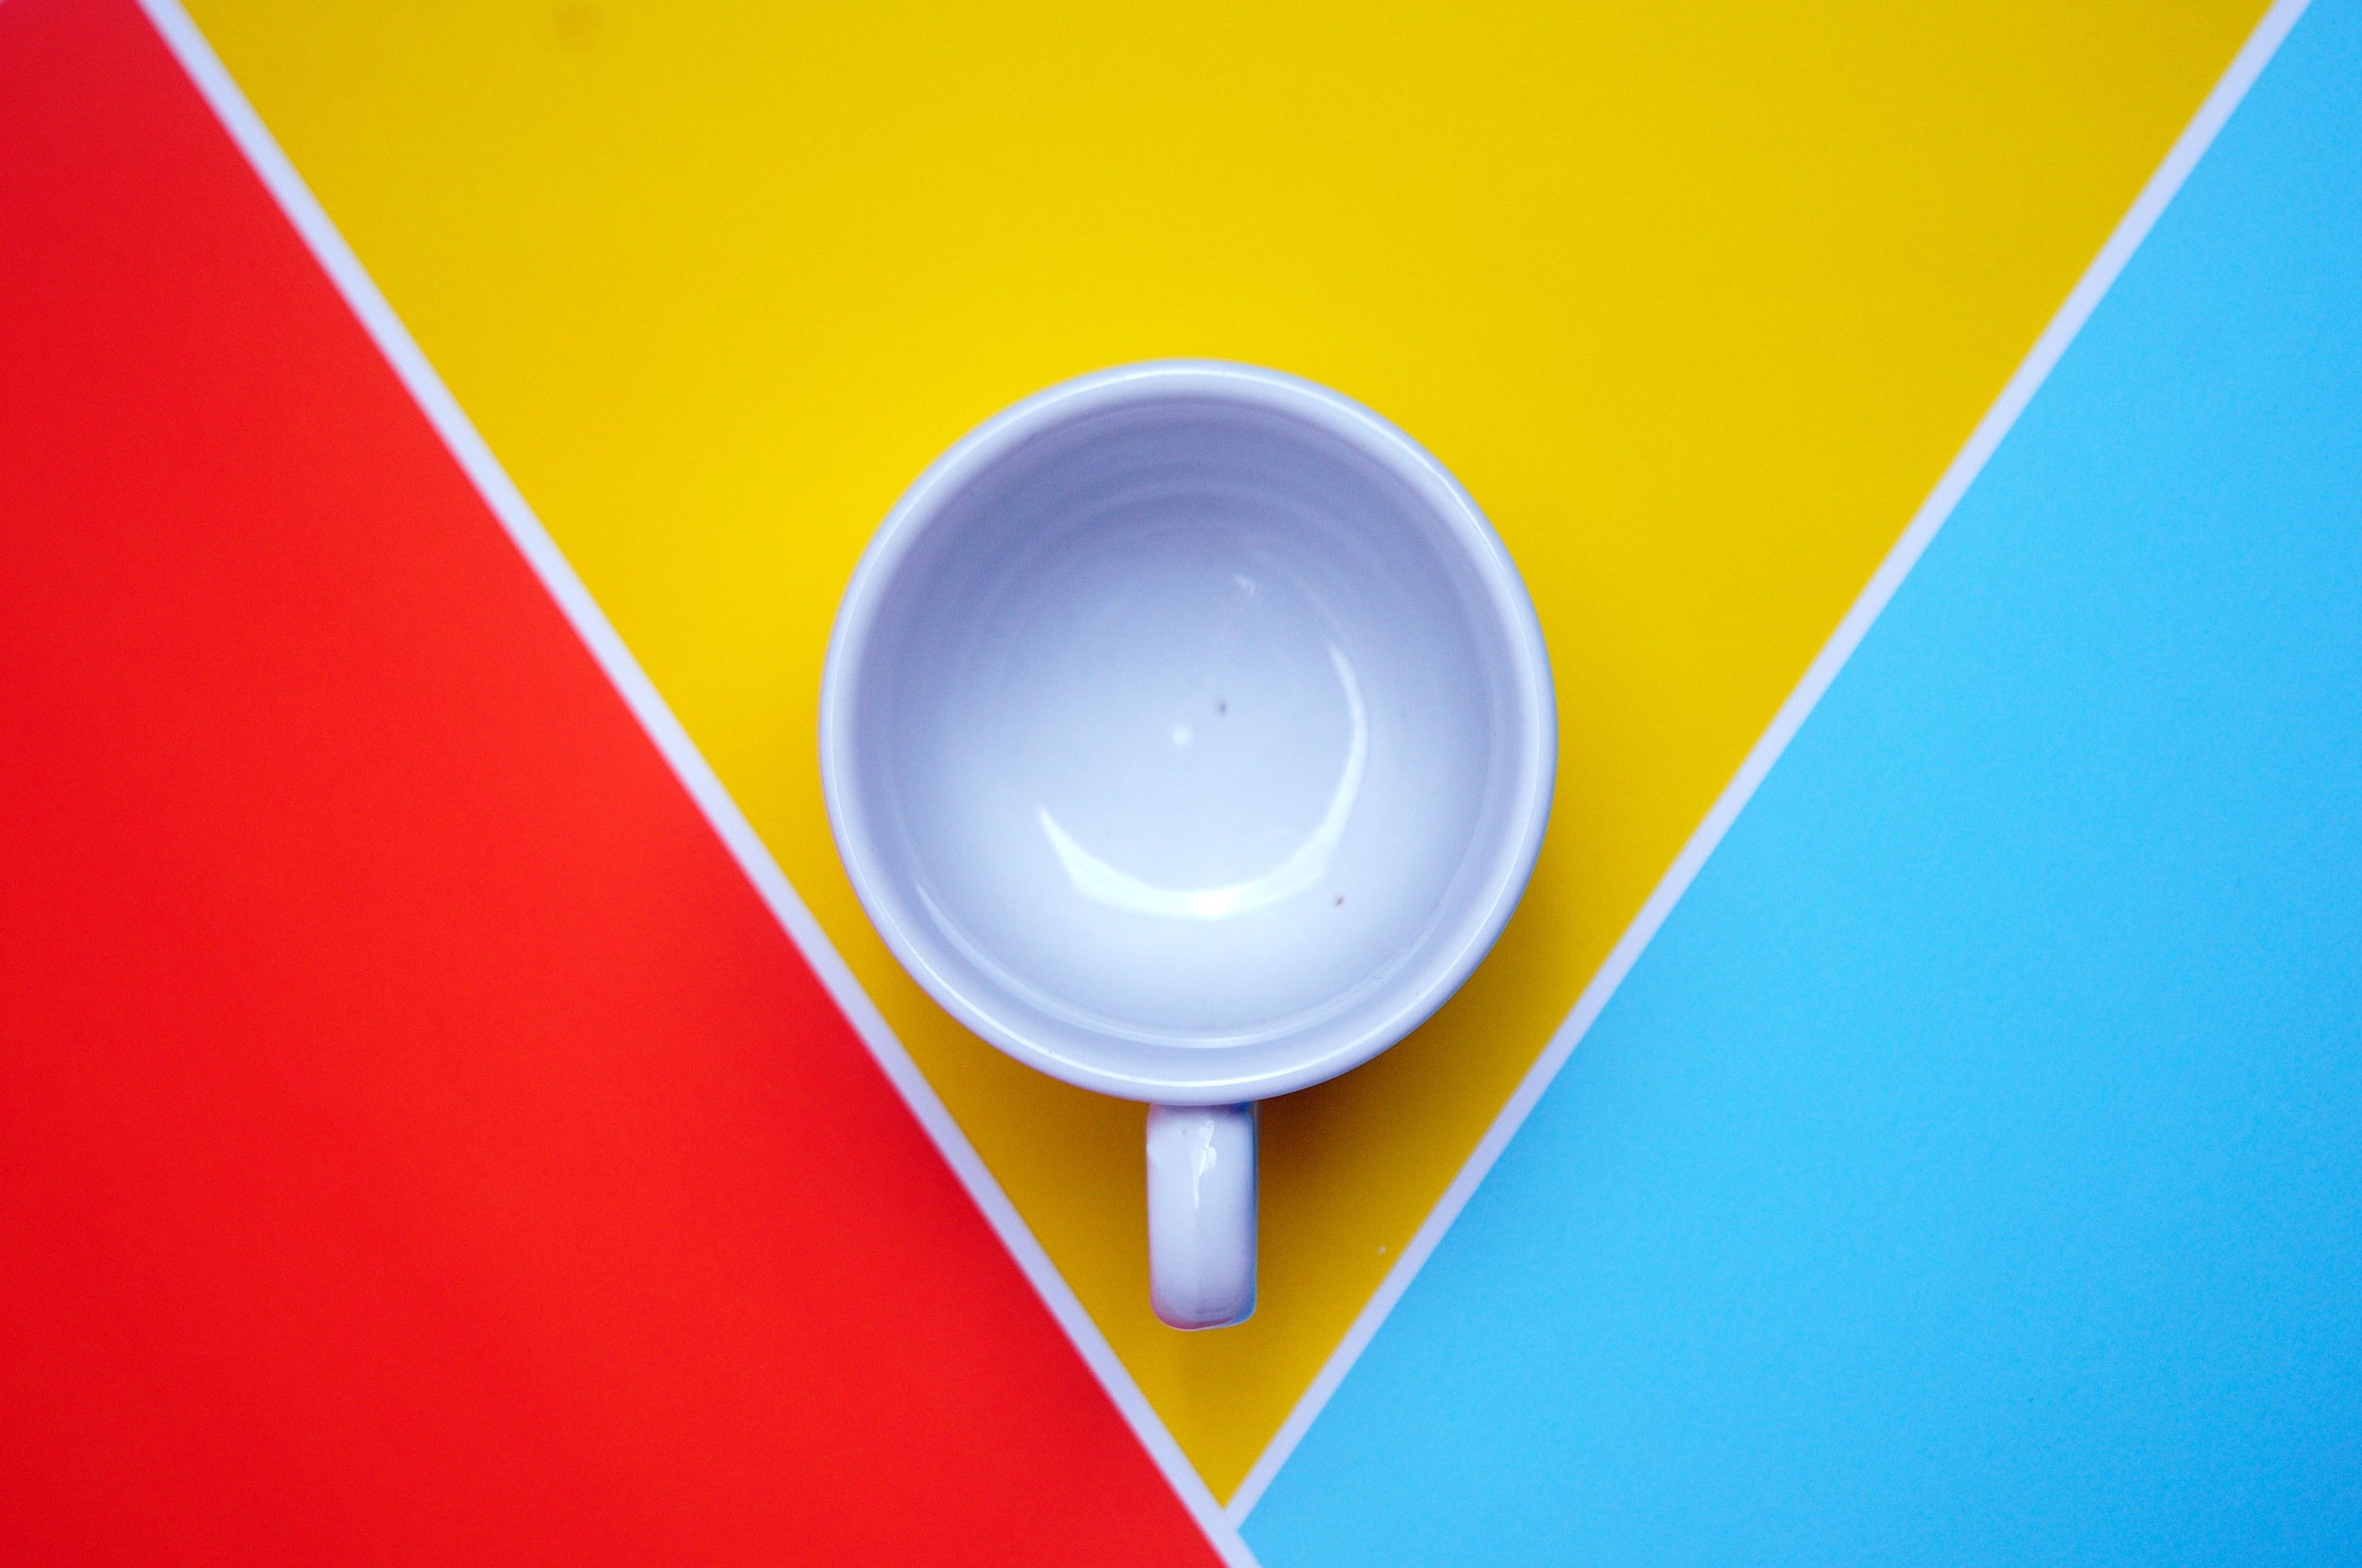 Here for the tea? - The Spiritualitea podcast is now live.